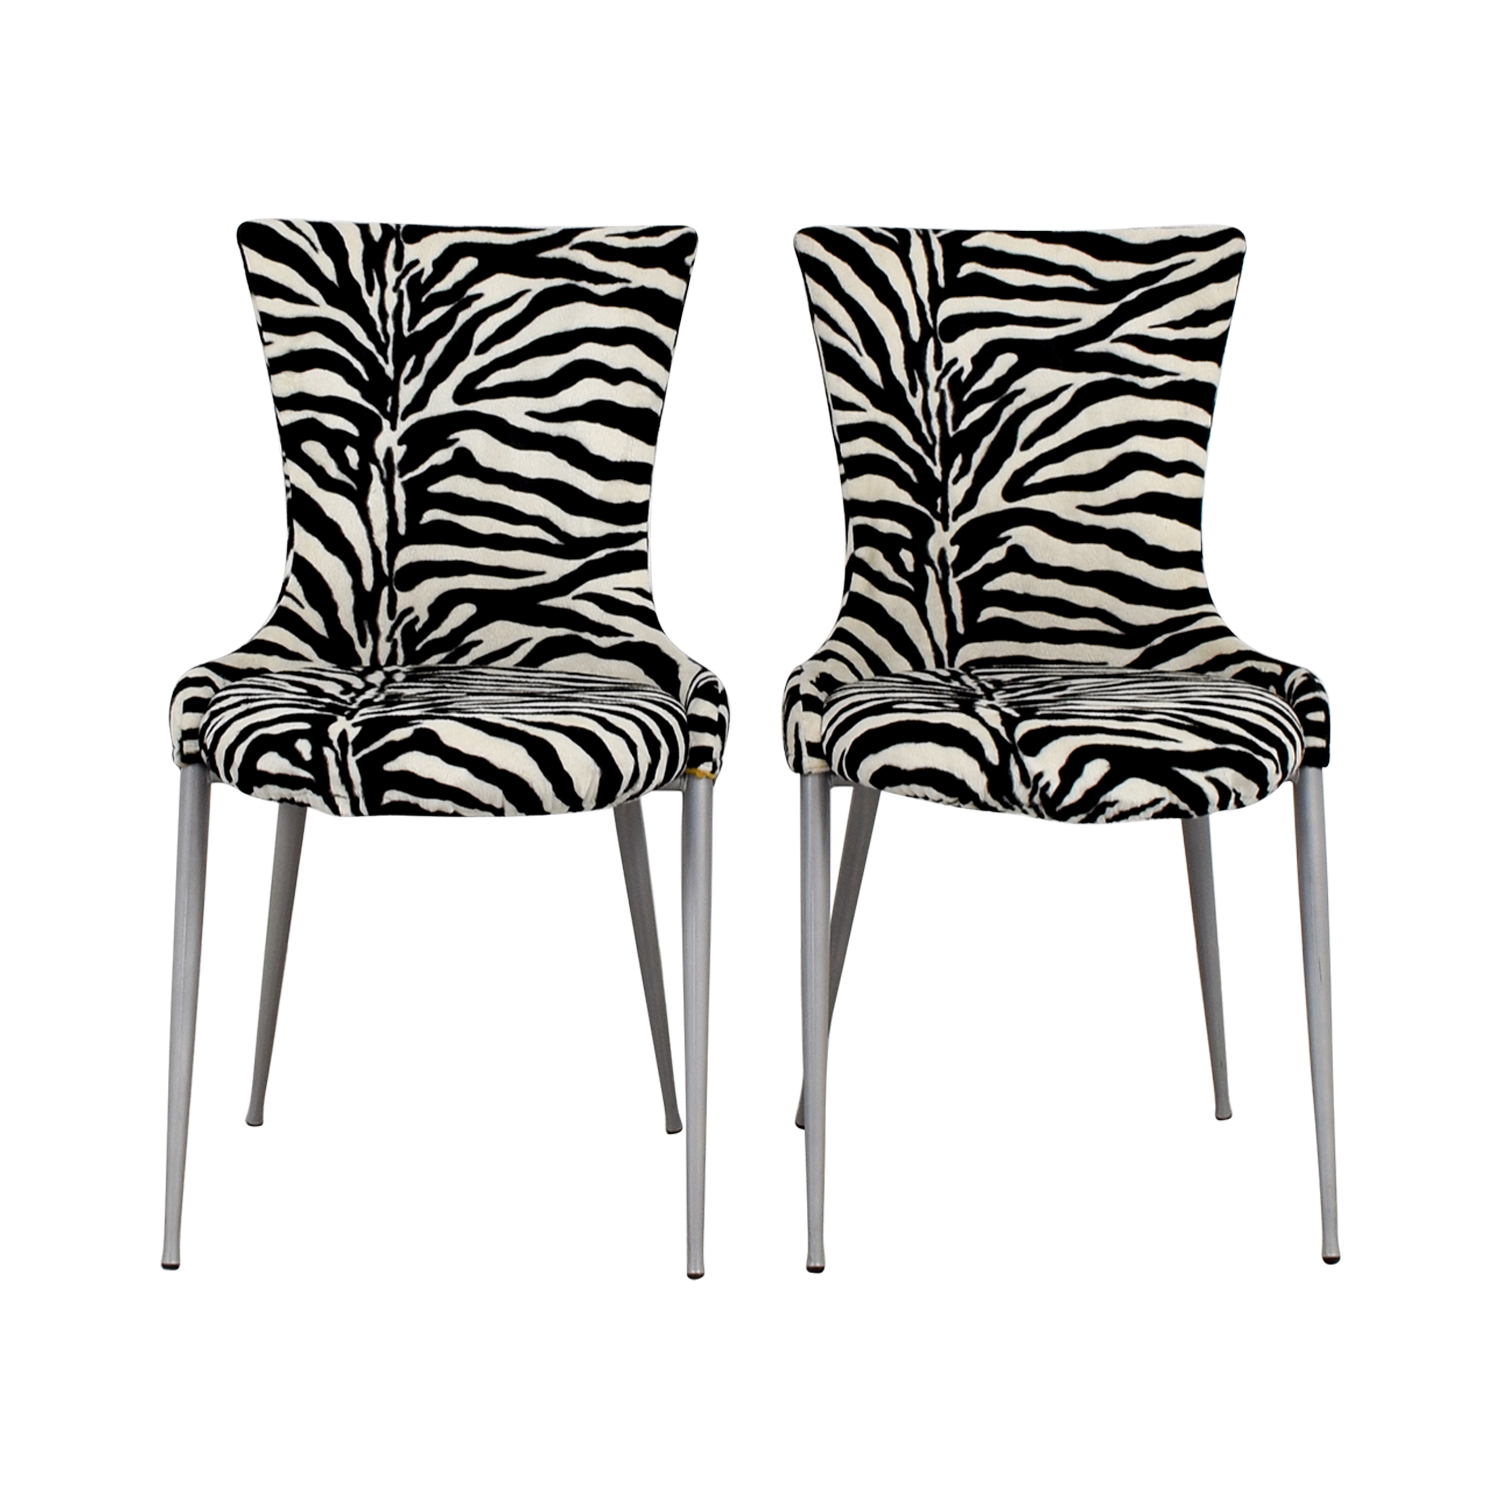 European furniture company contemporary zebra dining chairs sale